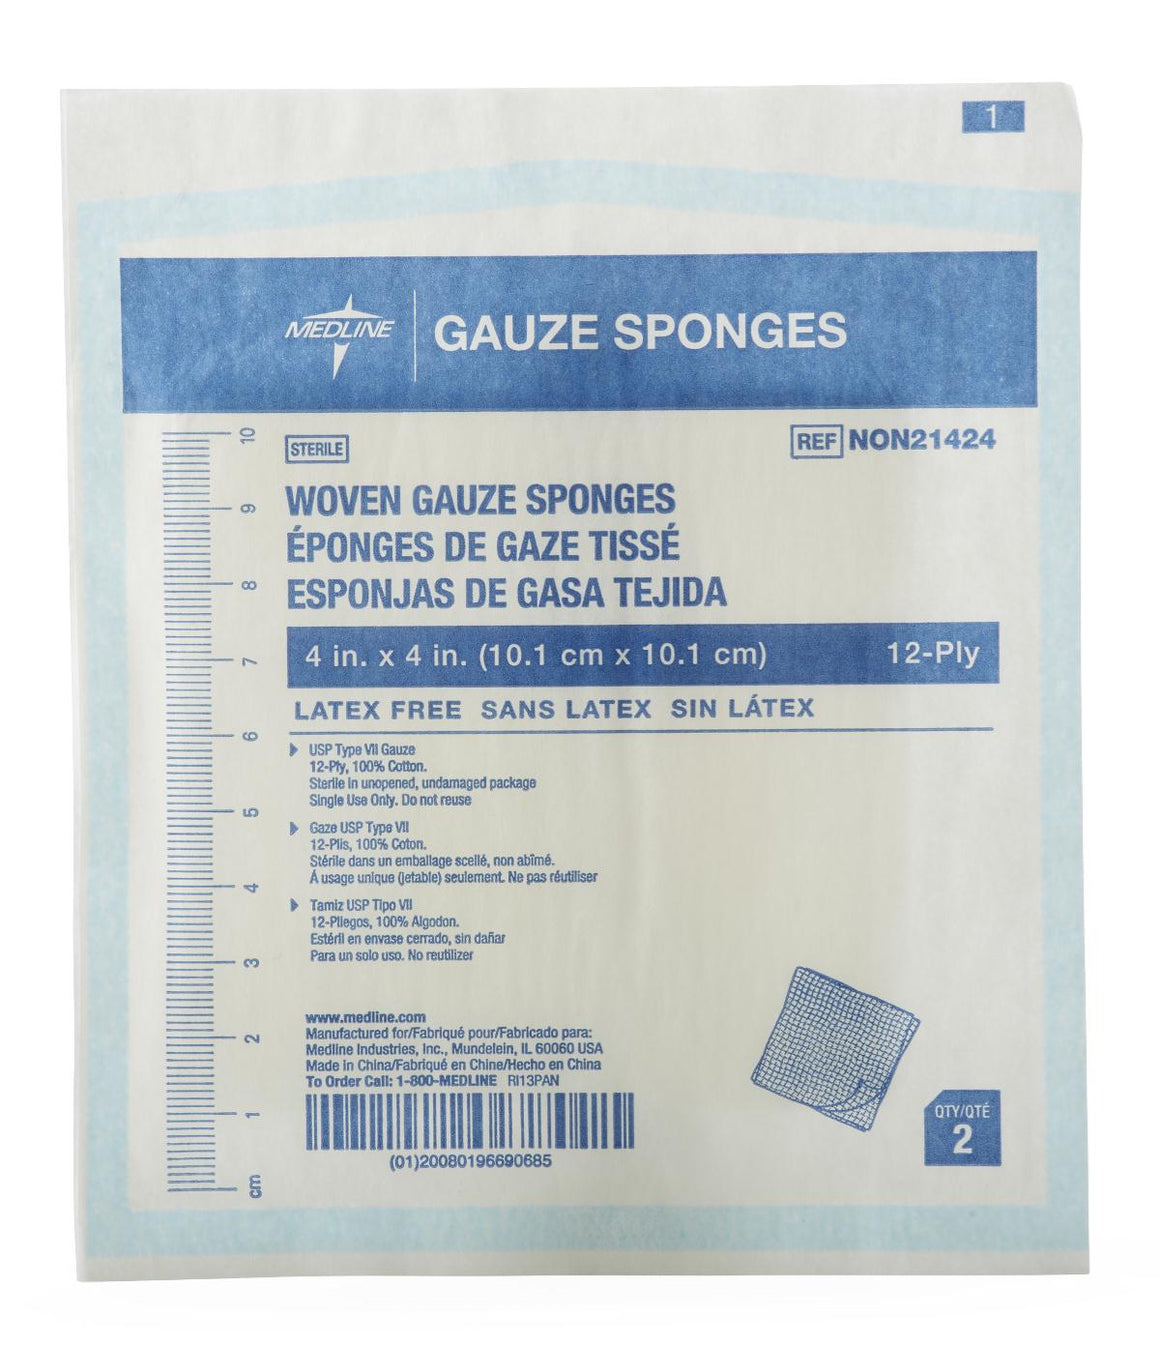 Woven Sterile Gauze Sponges, Box of 50